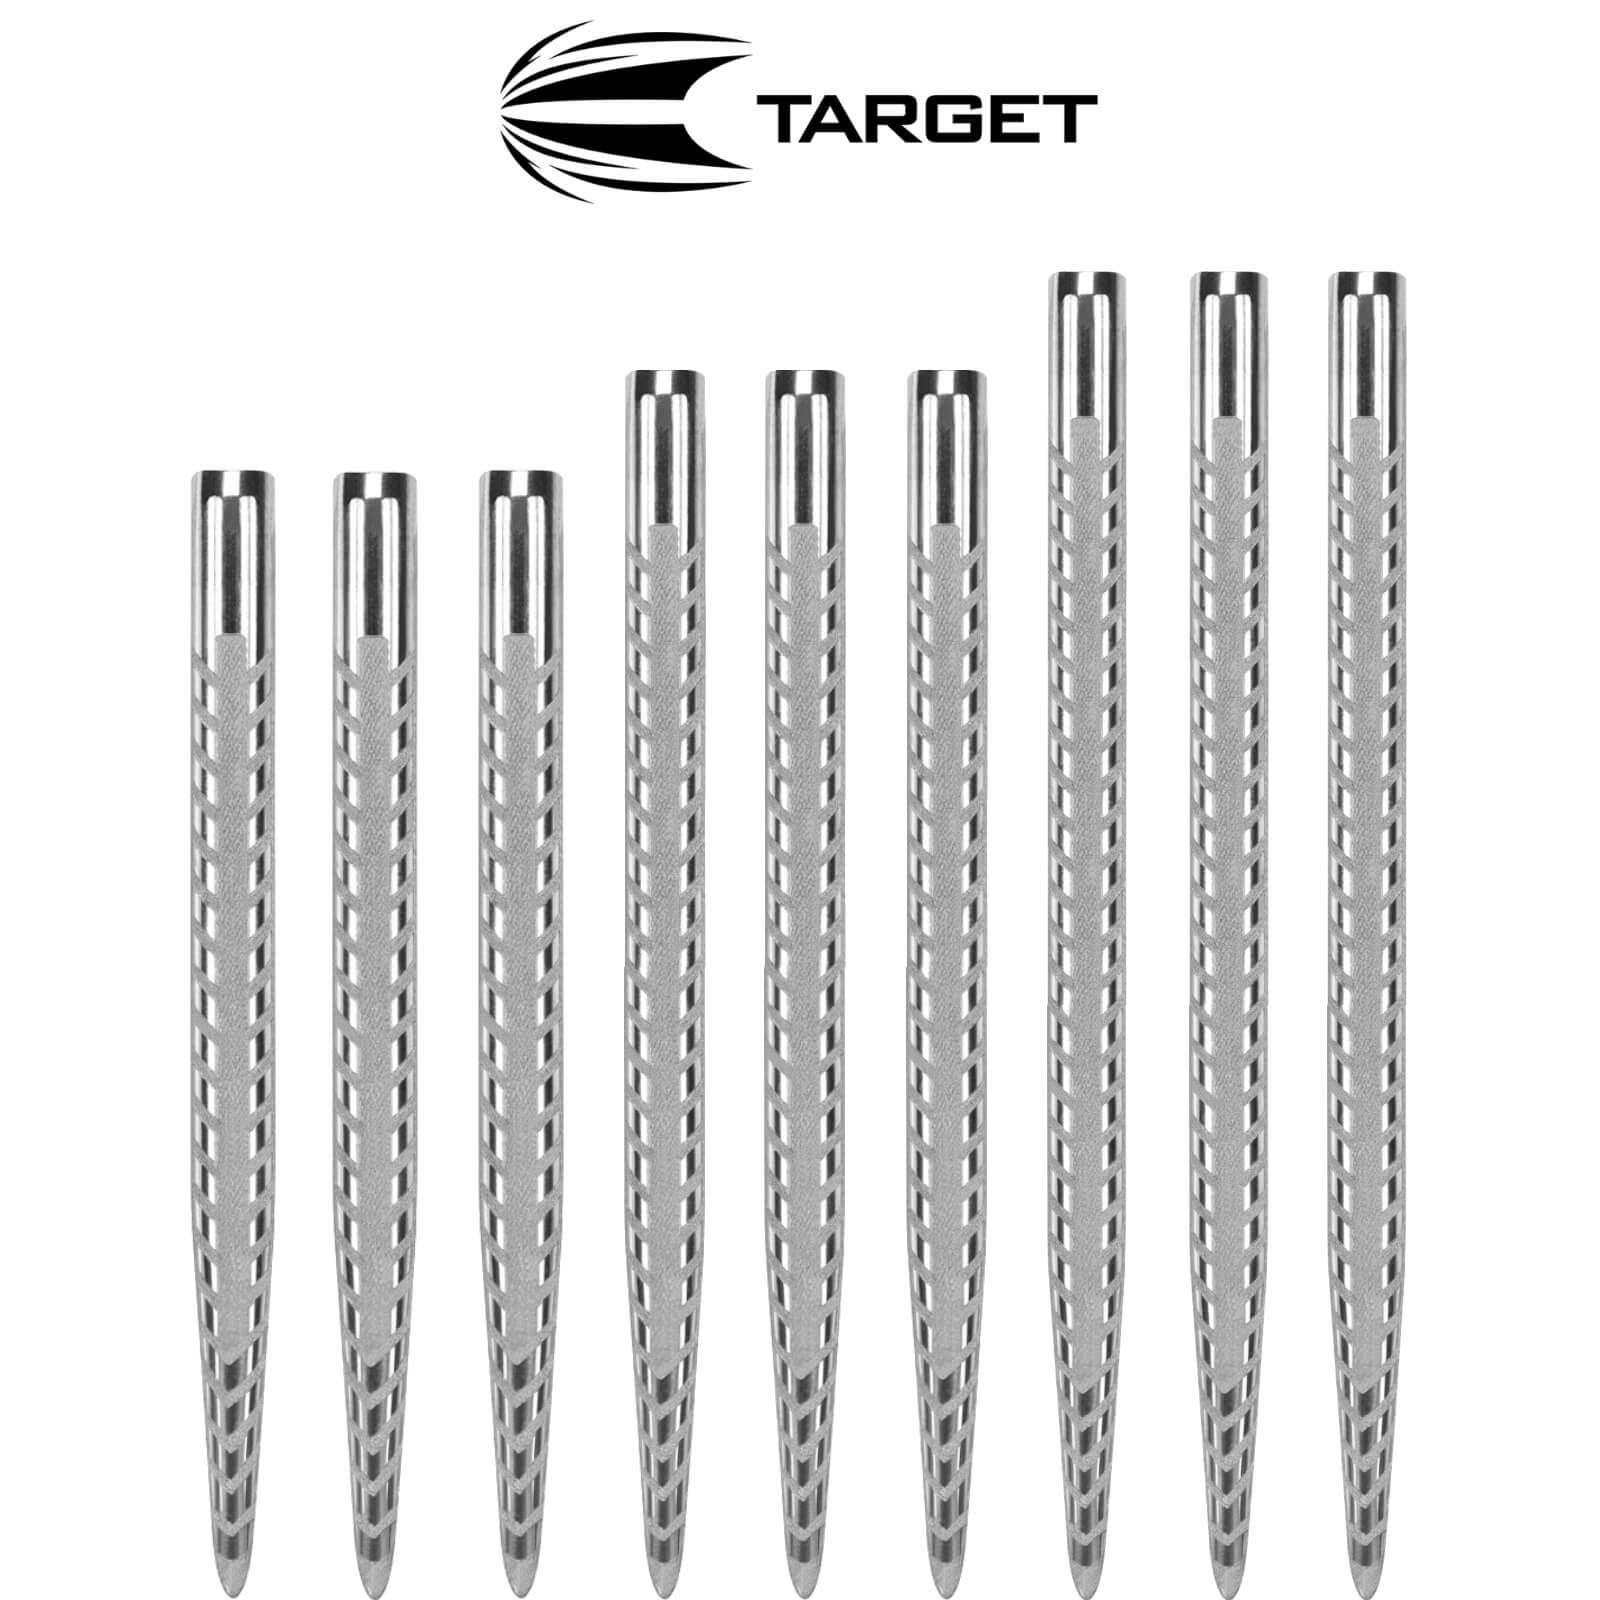 Point Accessories - Target - Quartz Pro Dart Points - 32mm 36mm 41mm